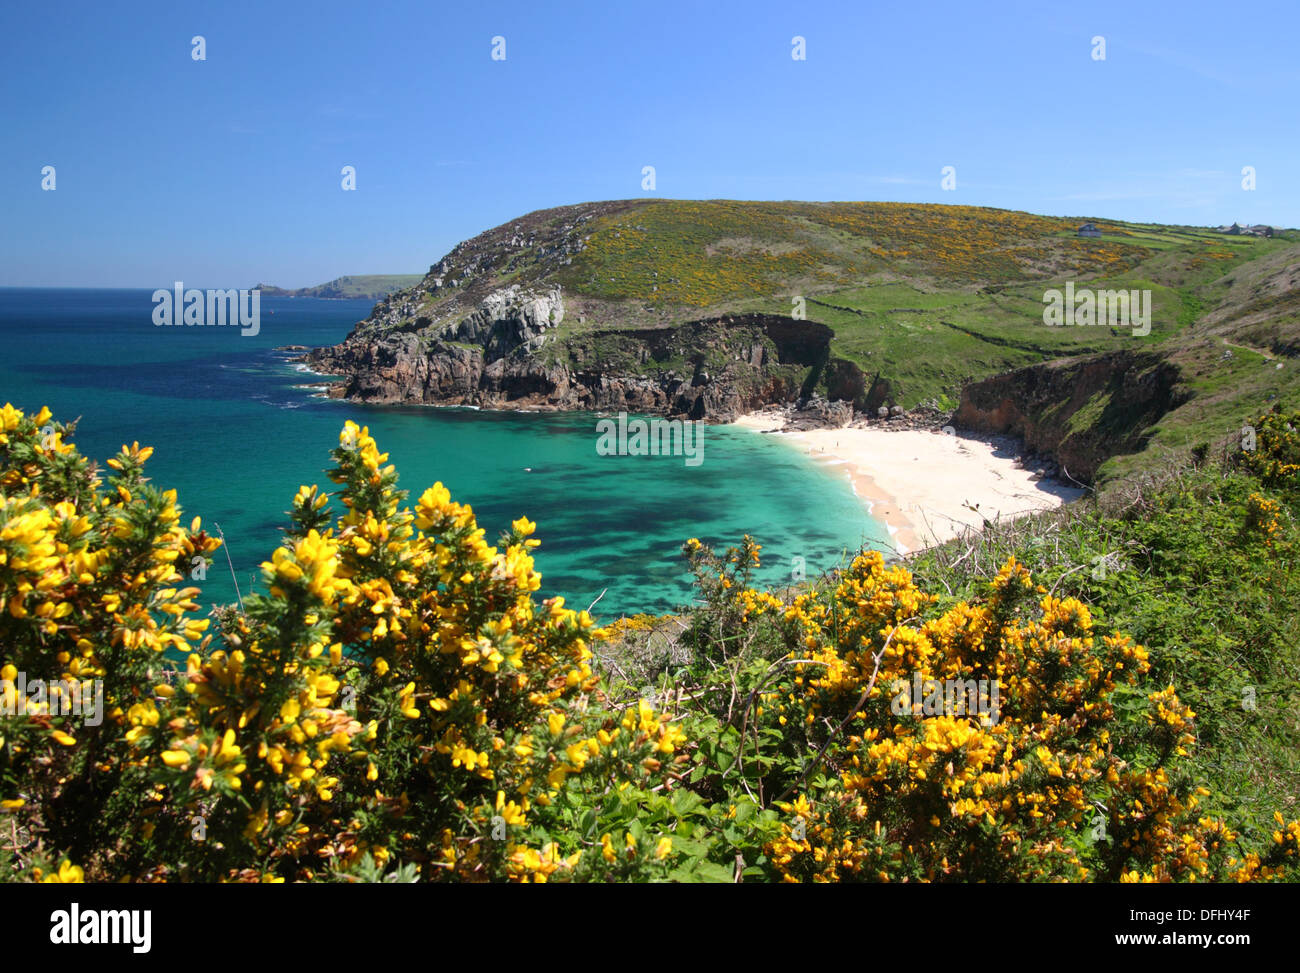 A cove with white sand, turquoise blue sea and yellow gorse flowers in the foreground. Stock Photo